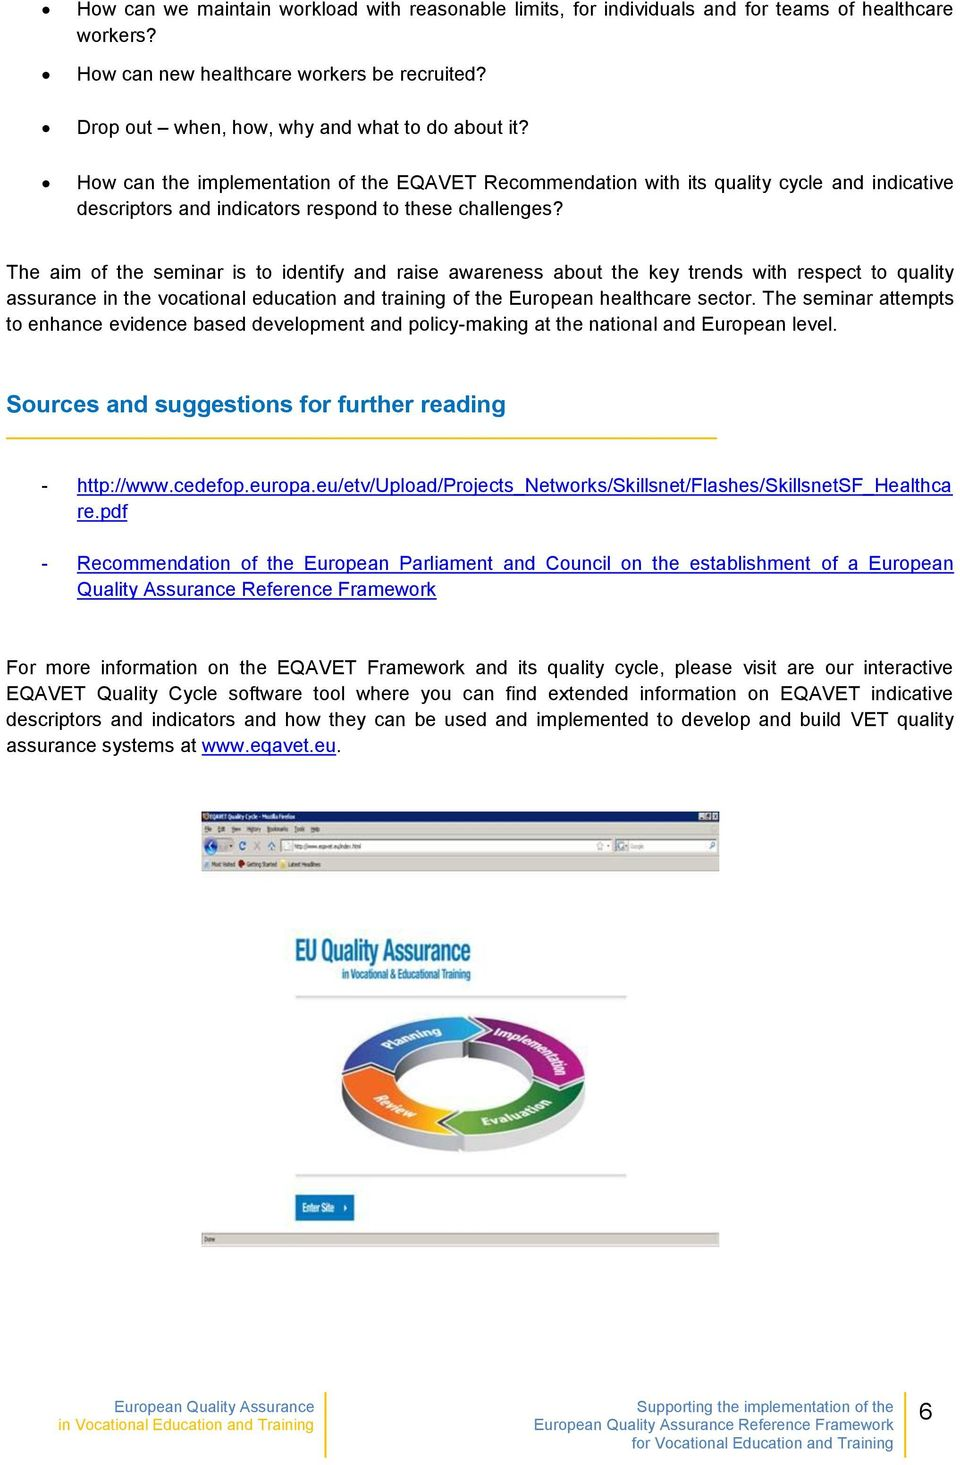 The seminar attempts to enhance evidence based development and policy-making at the national and European level. Sources and suggestions for further reading - http://www.cedefop.europa.